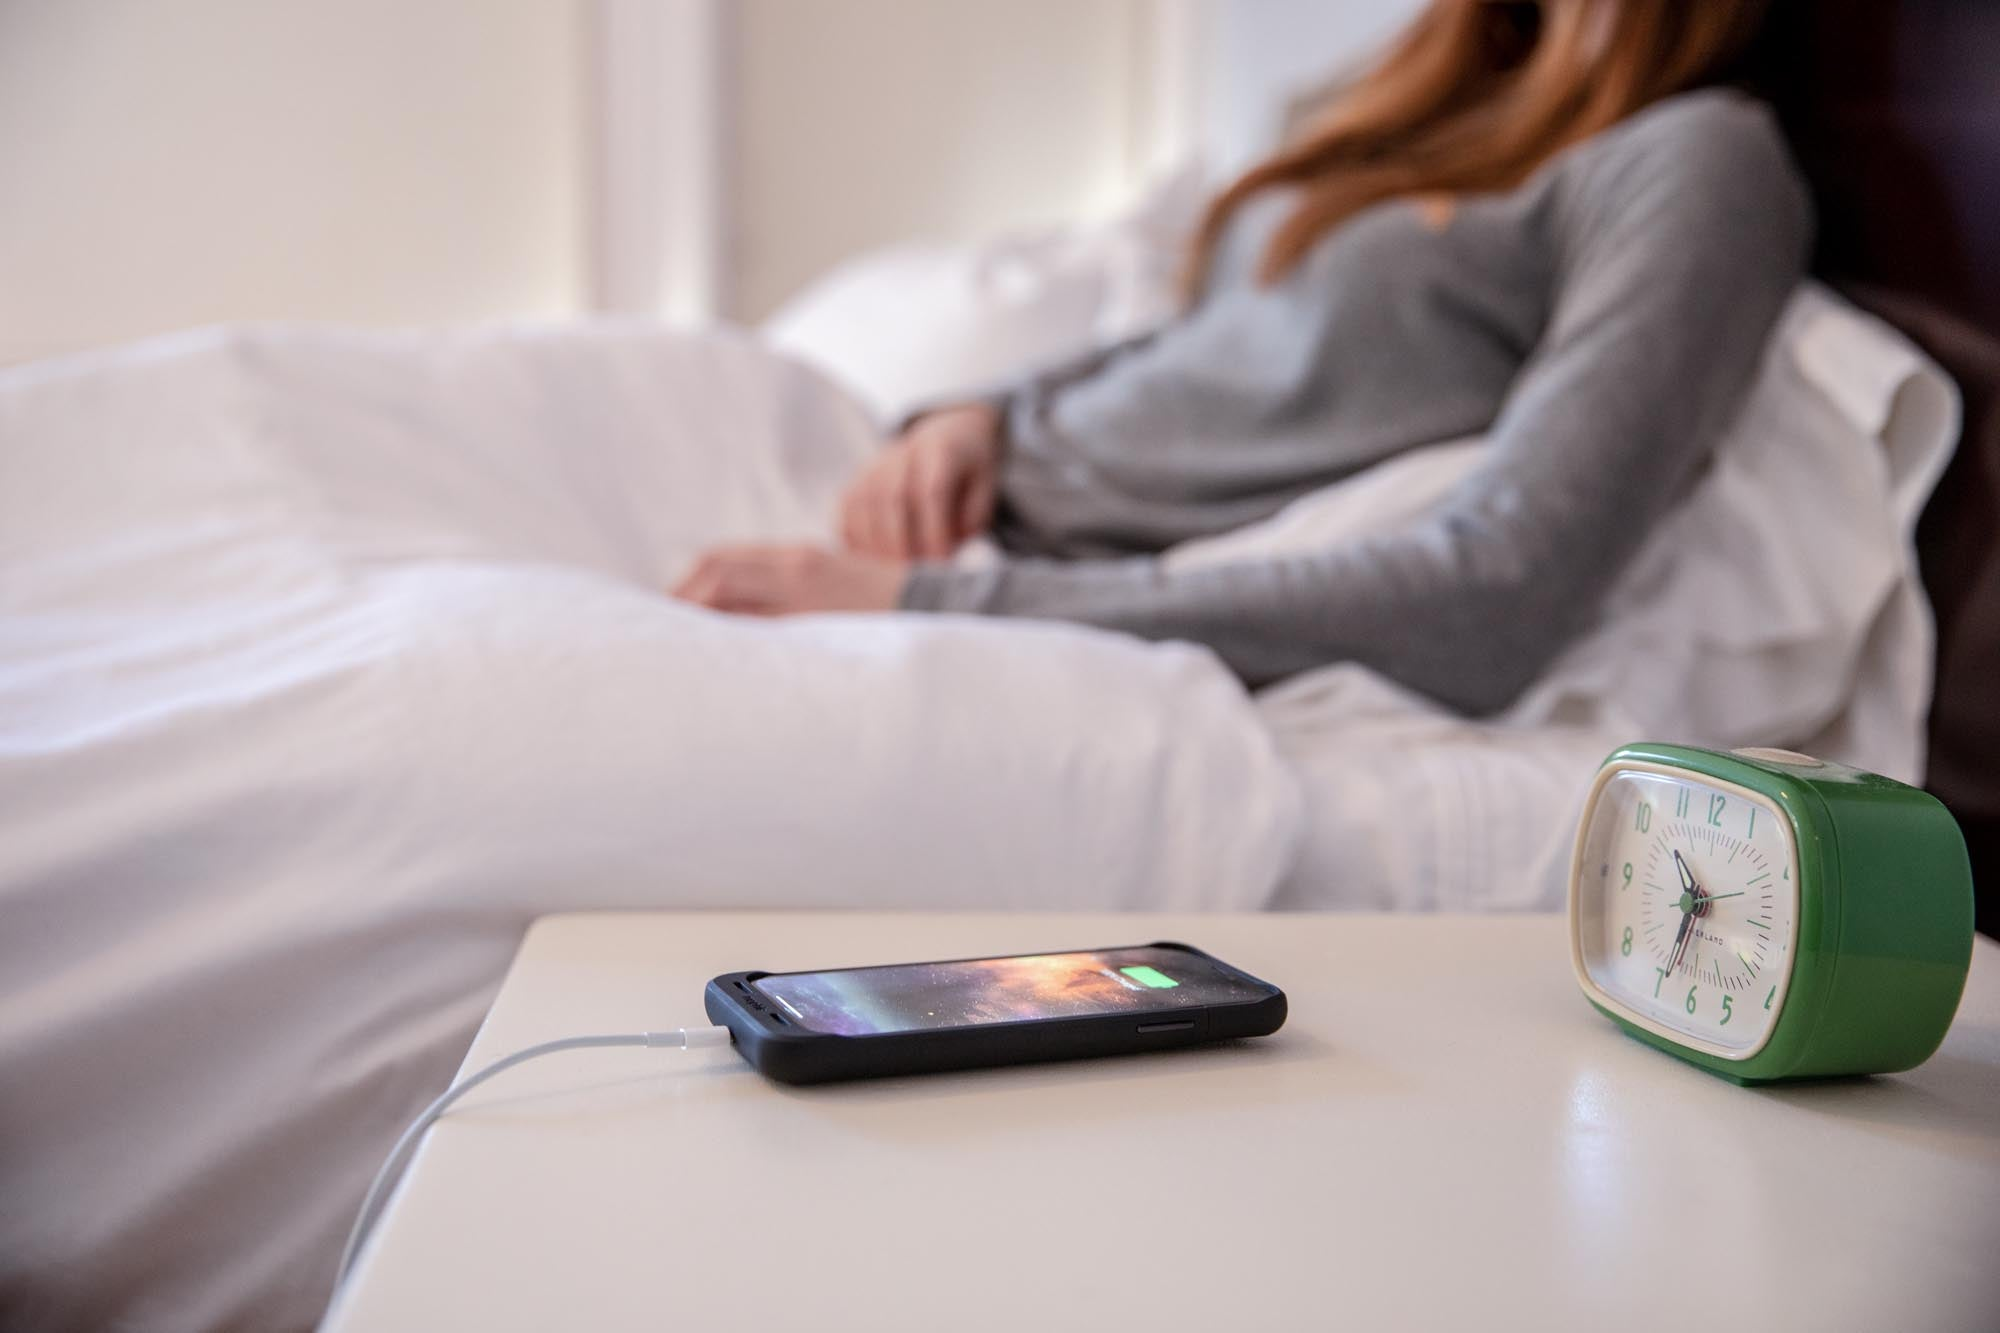 Woman in a bed next to a phone charging on the nightstand